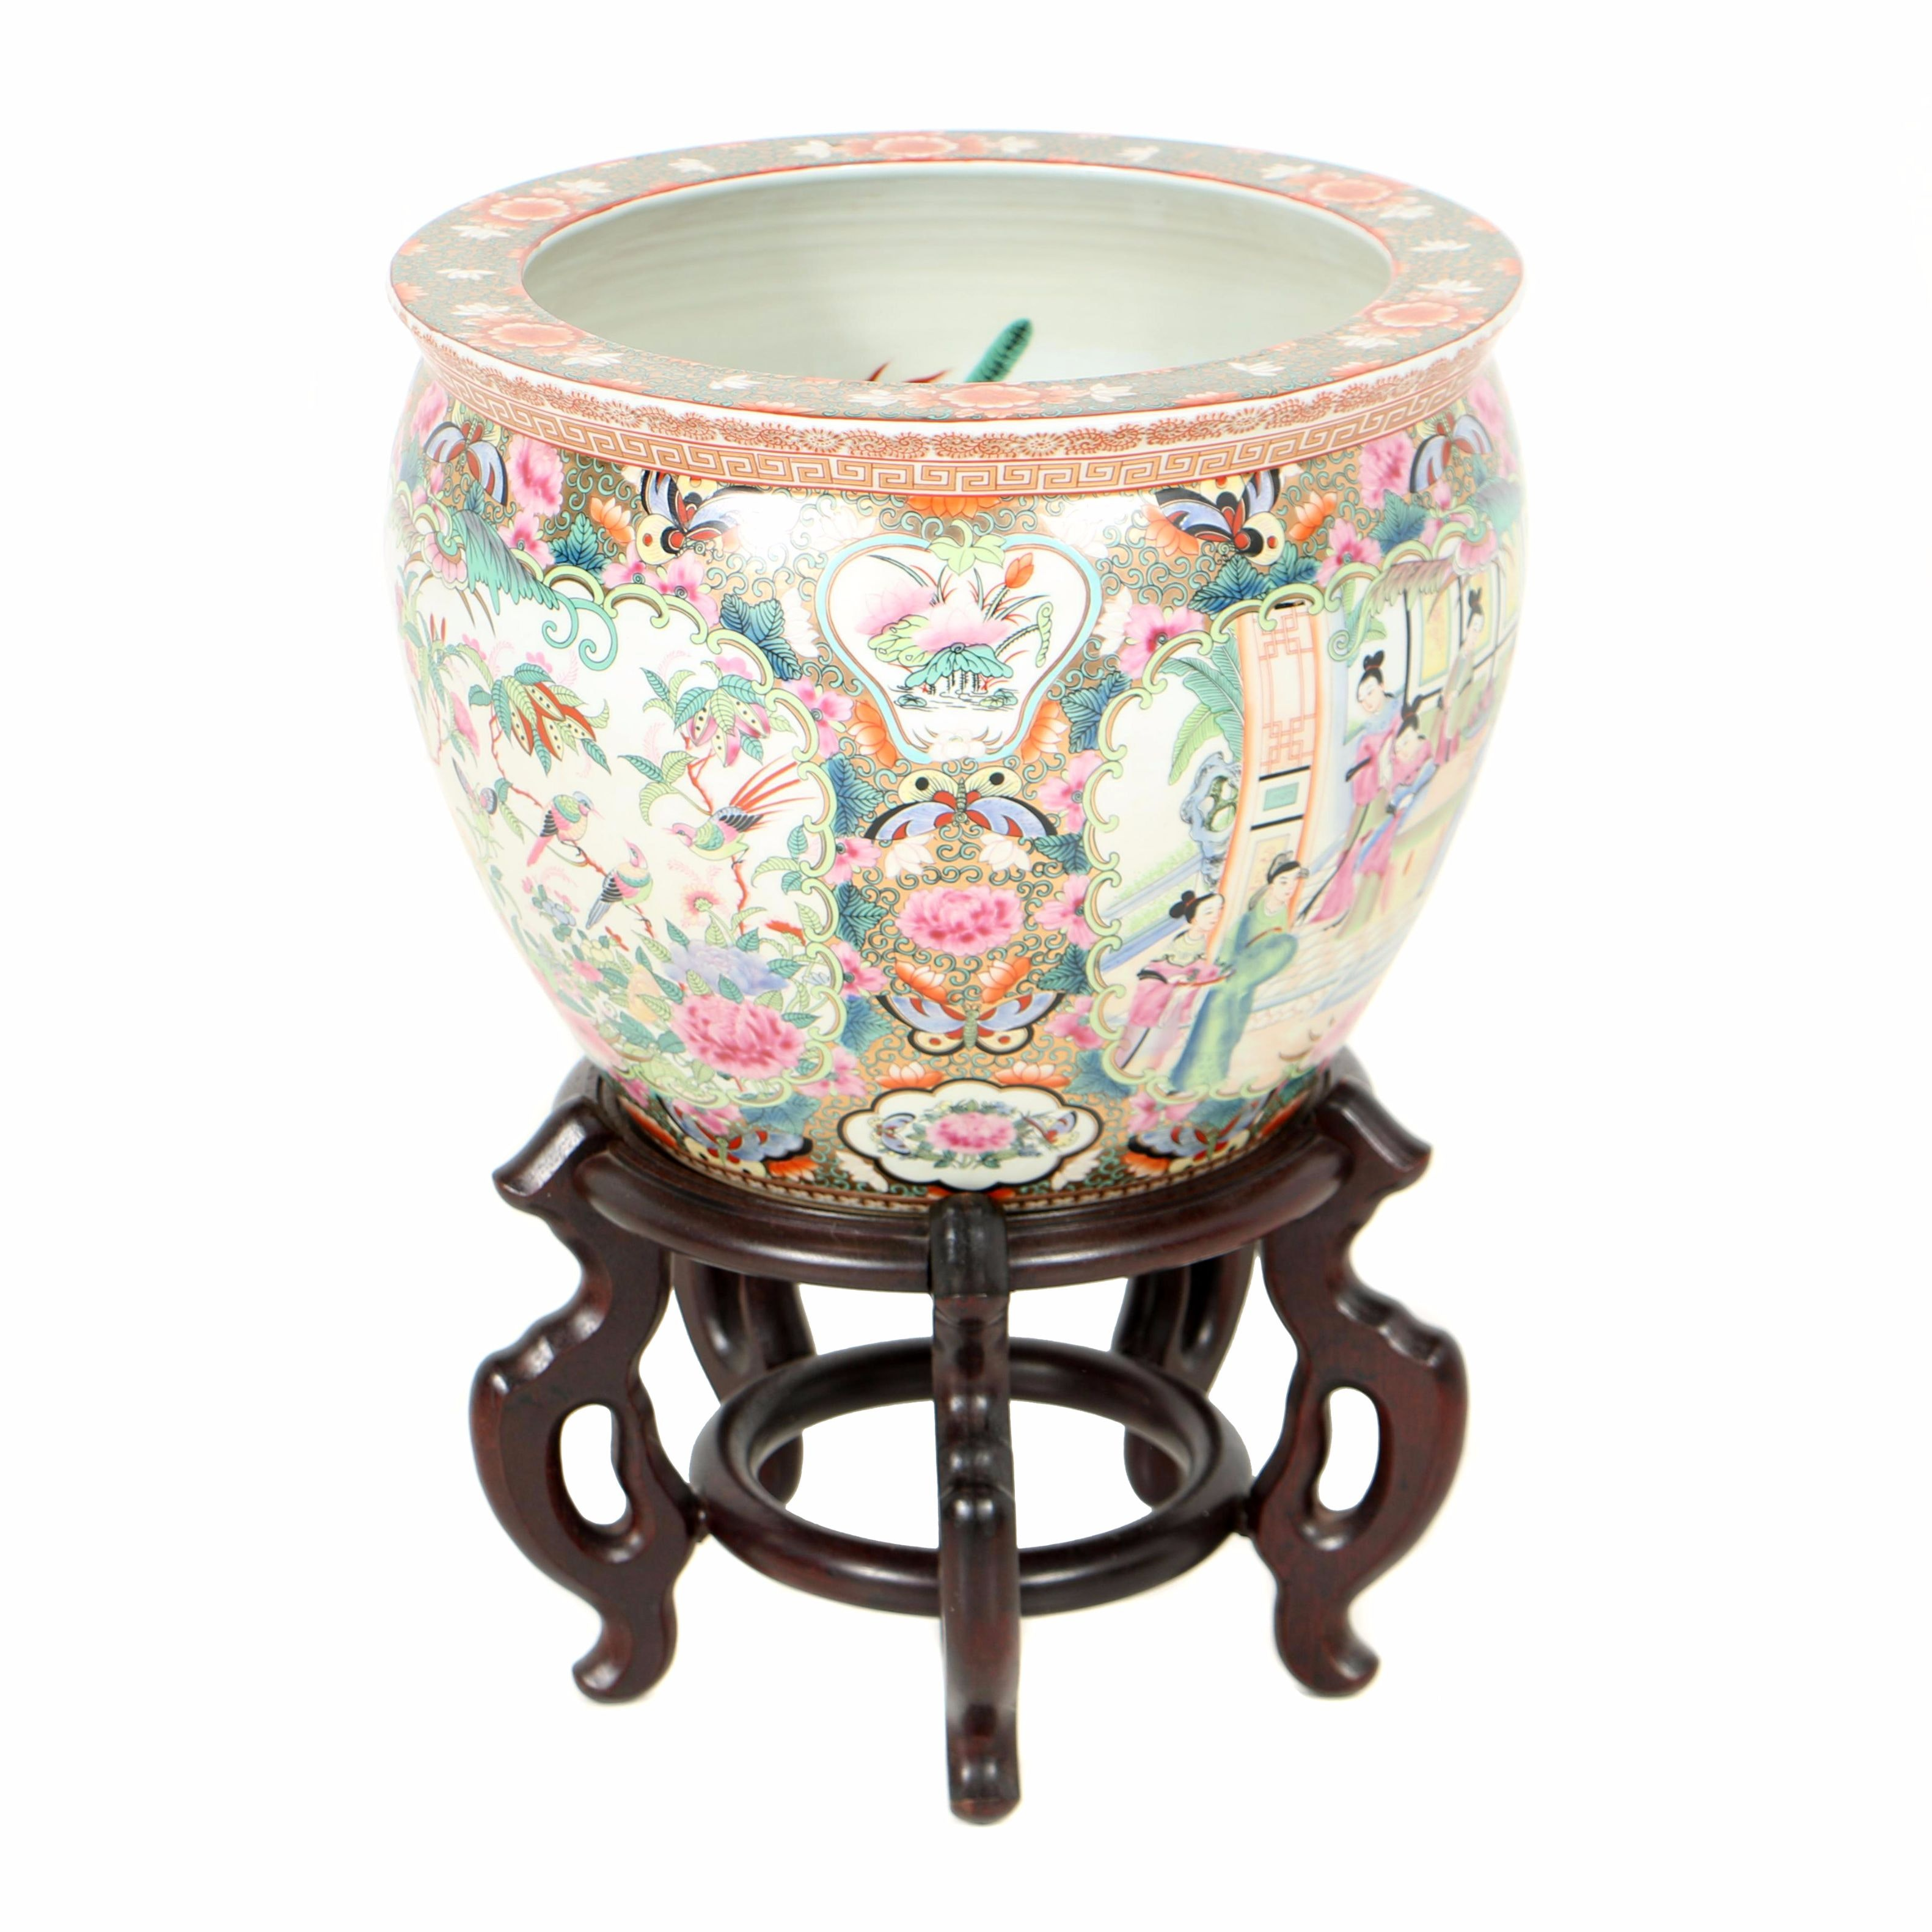 Chinese Rose Medallion Porcelain Jardiniere with Carved Hardwood Stand